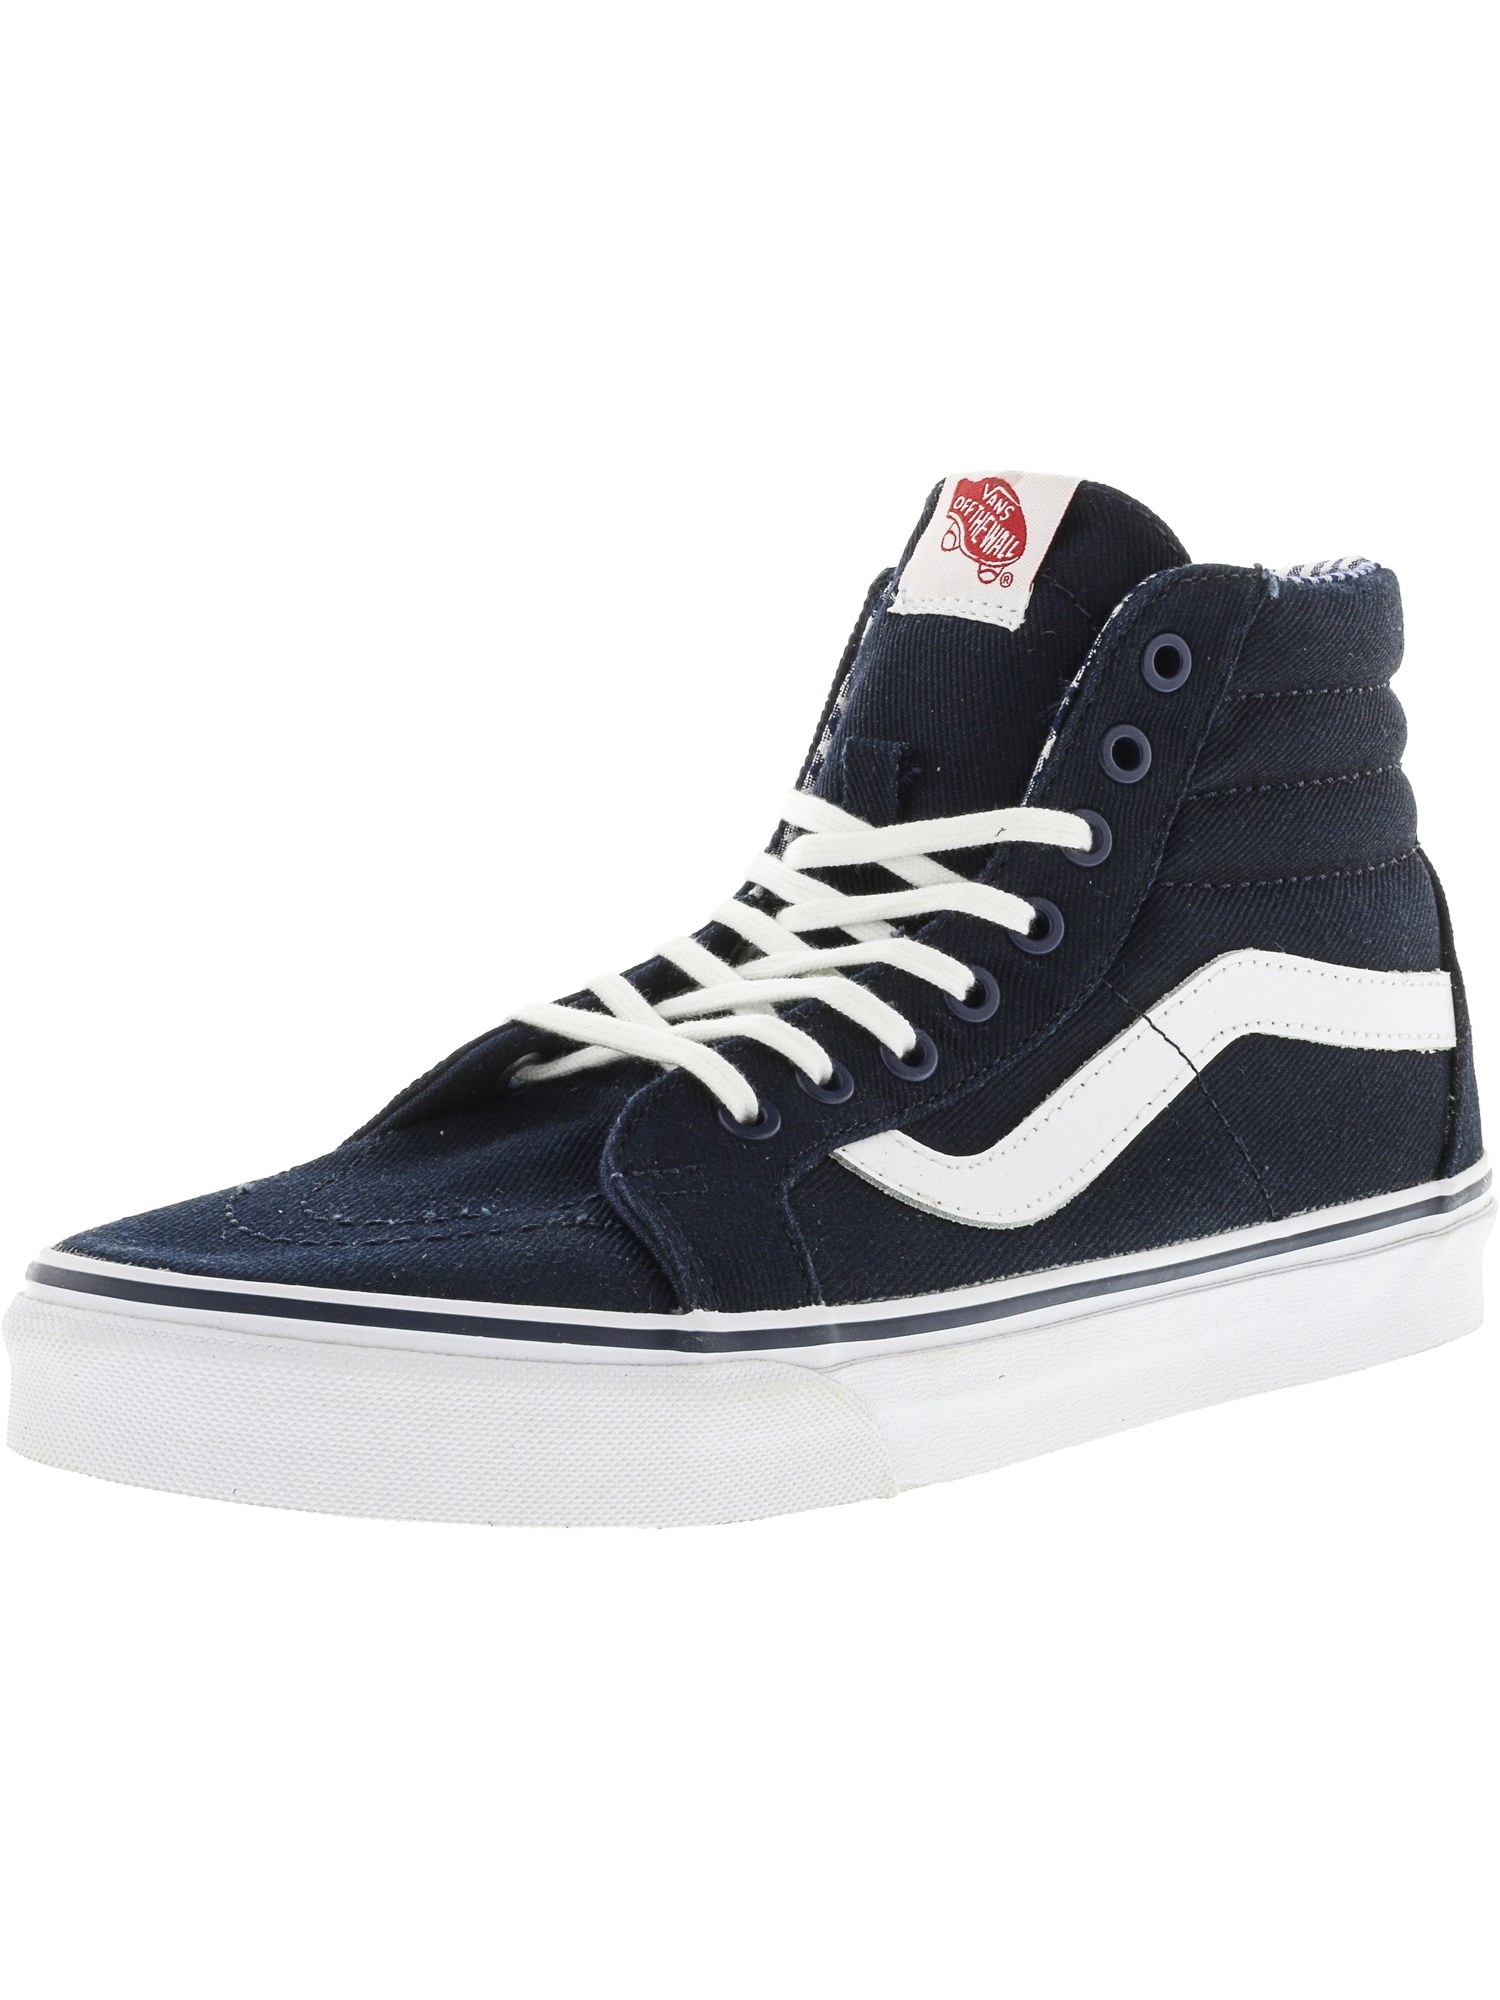 Vans Sk8-Hi Reissue Twill And Gingham Dress Blues / True White Ankle-High Canvas Skateboarding Shoe - 10.5M 9M